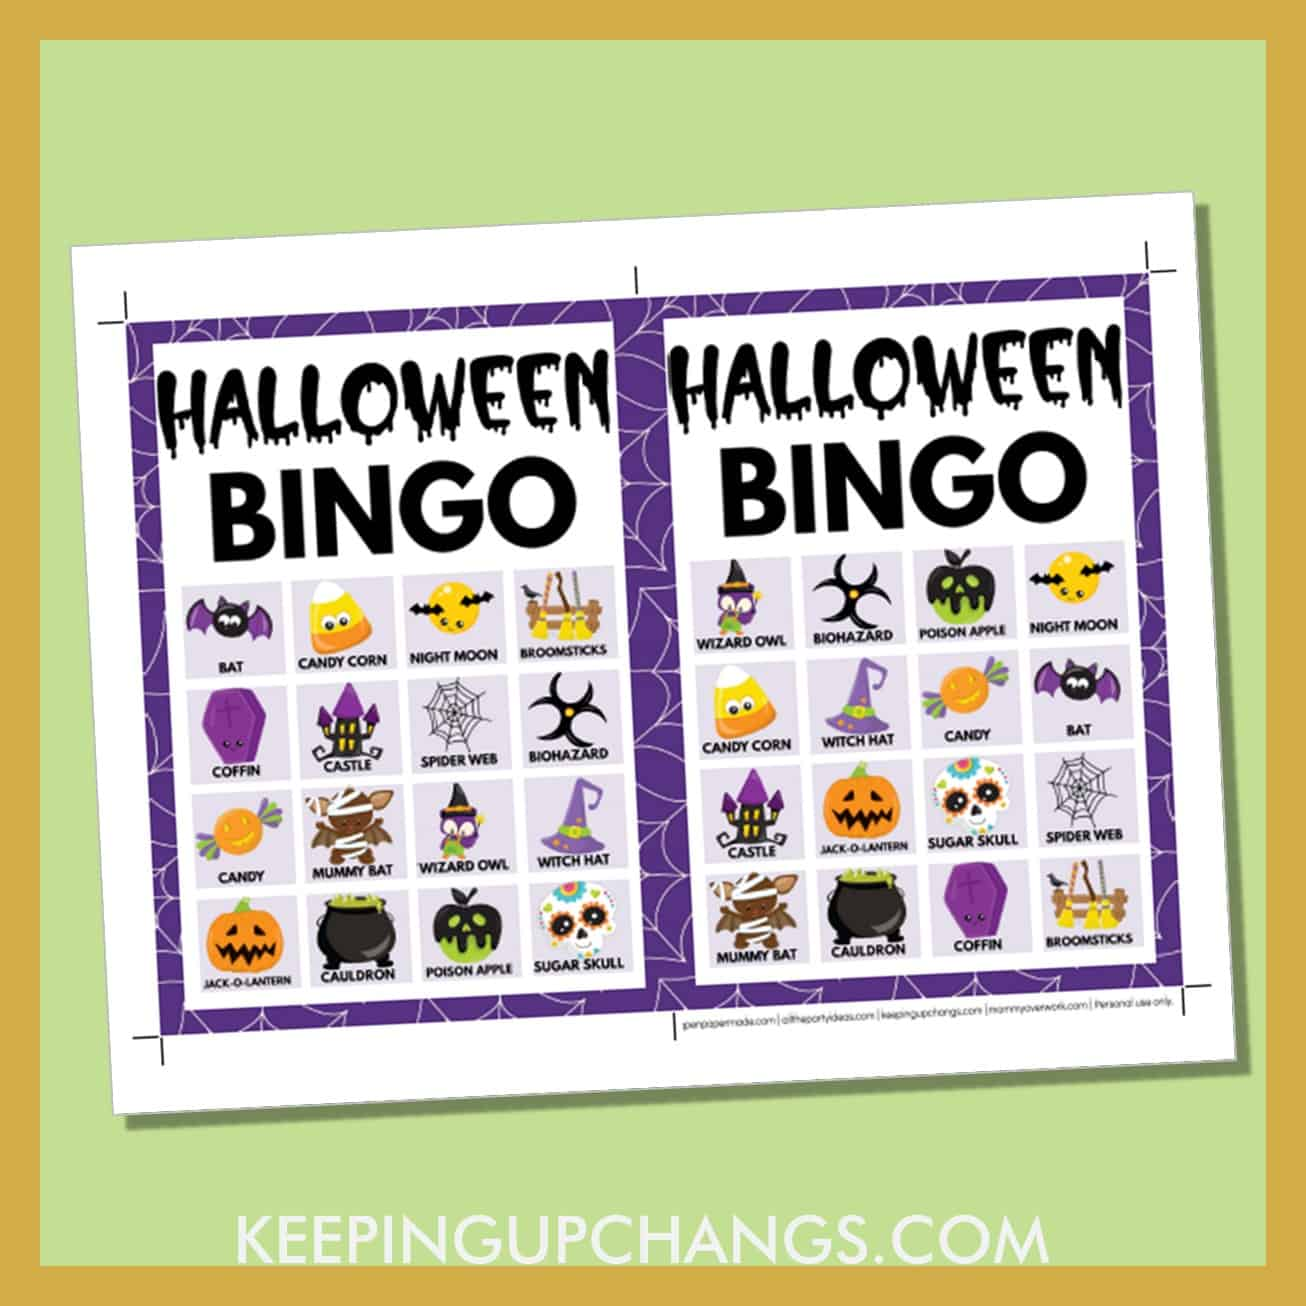 free fall halloween bingo card 4x4 5x7 game boards with images and text words.